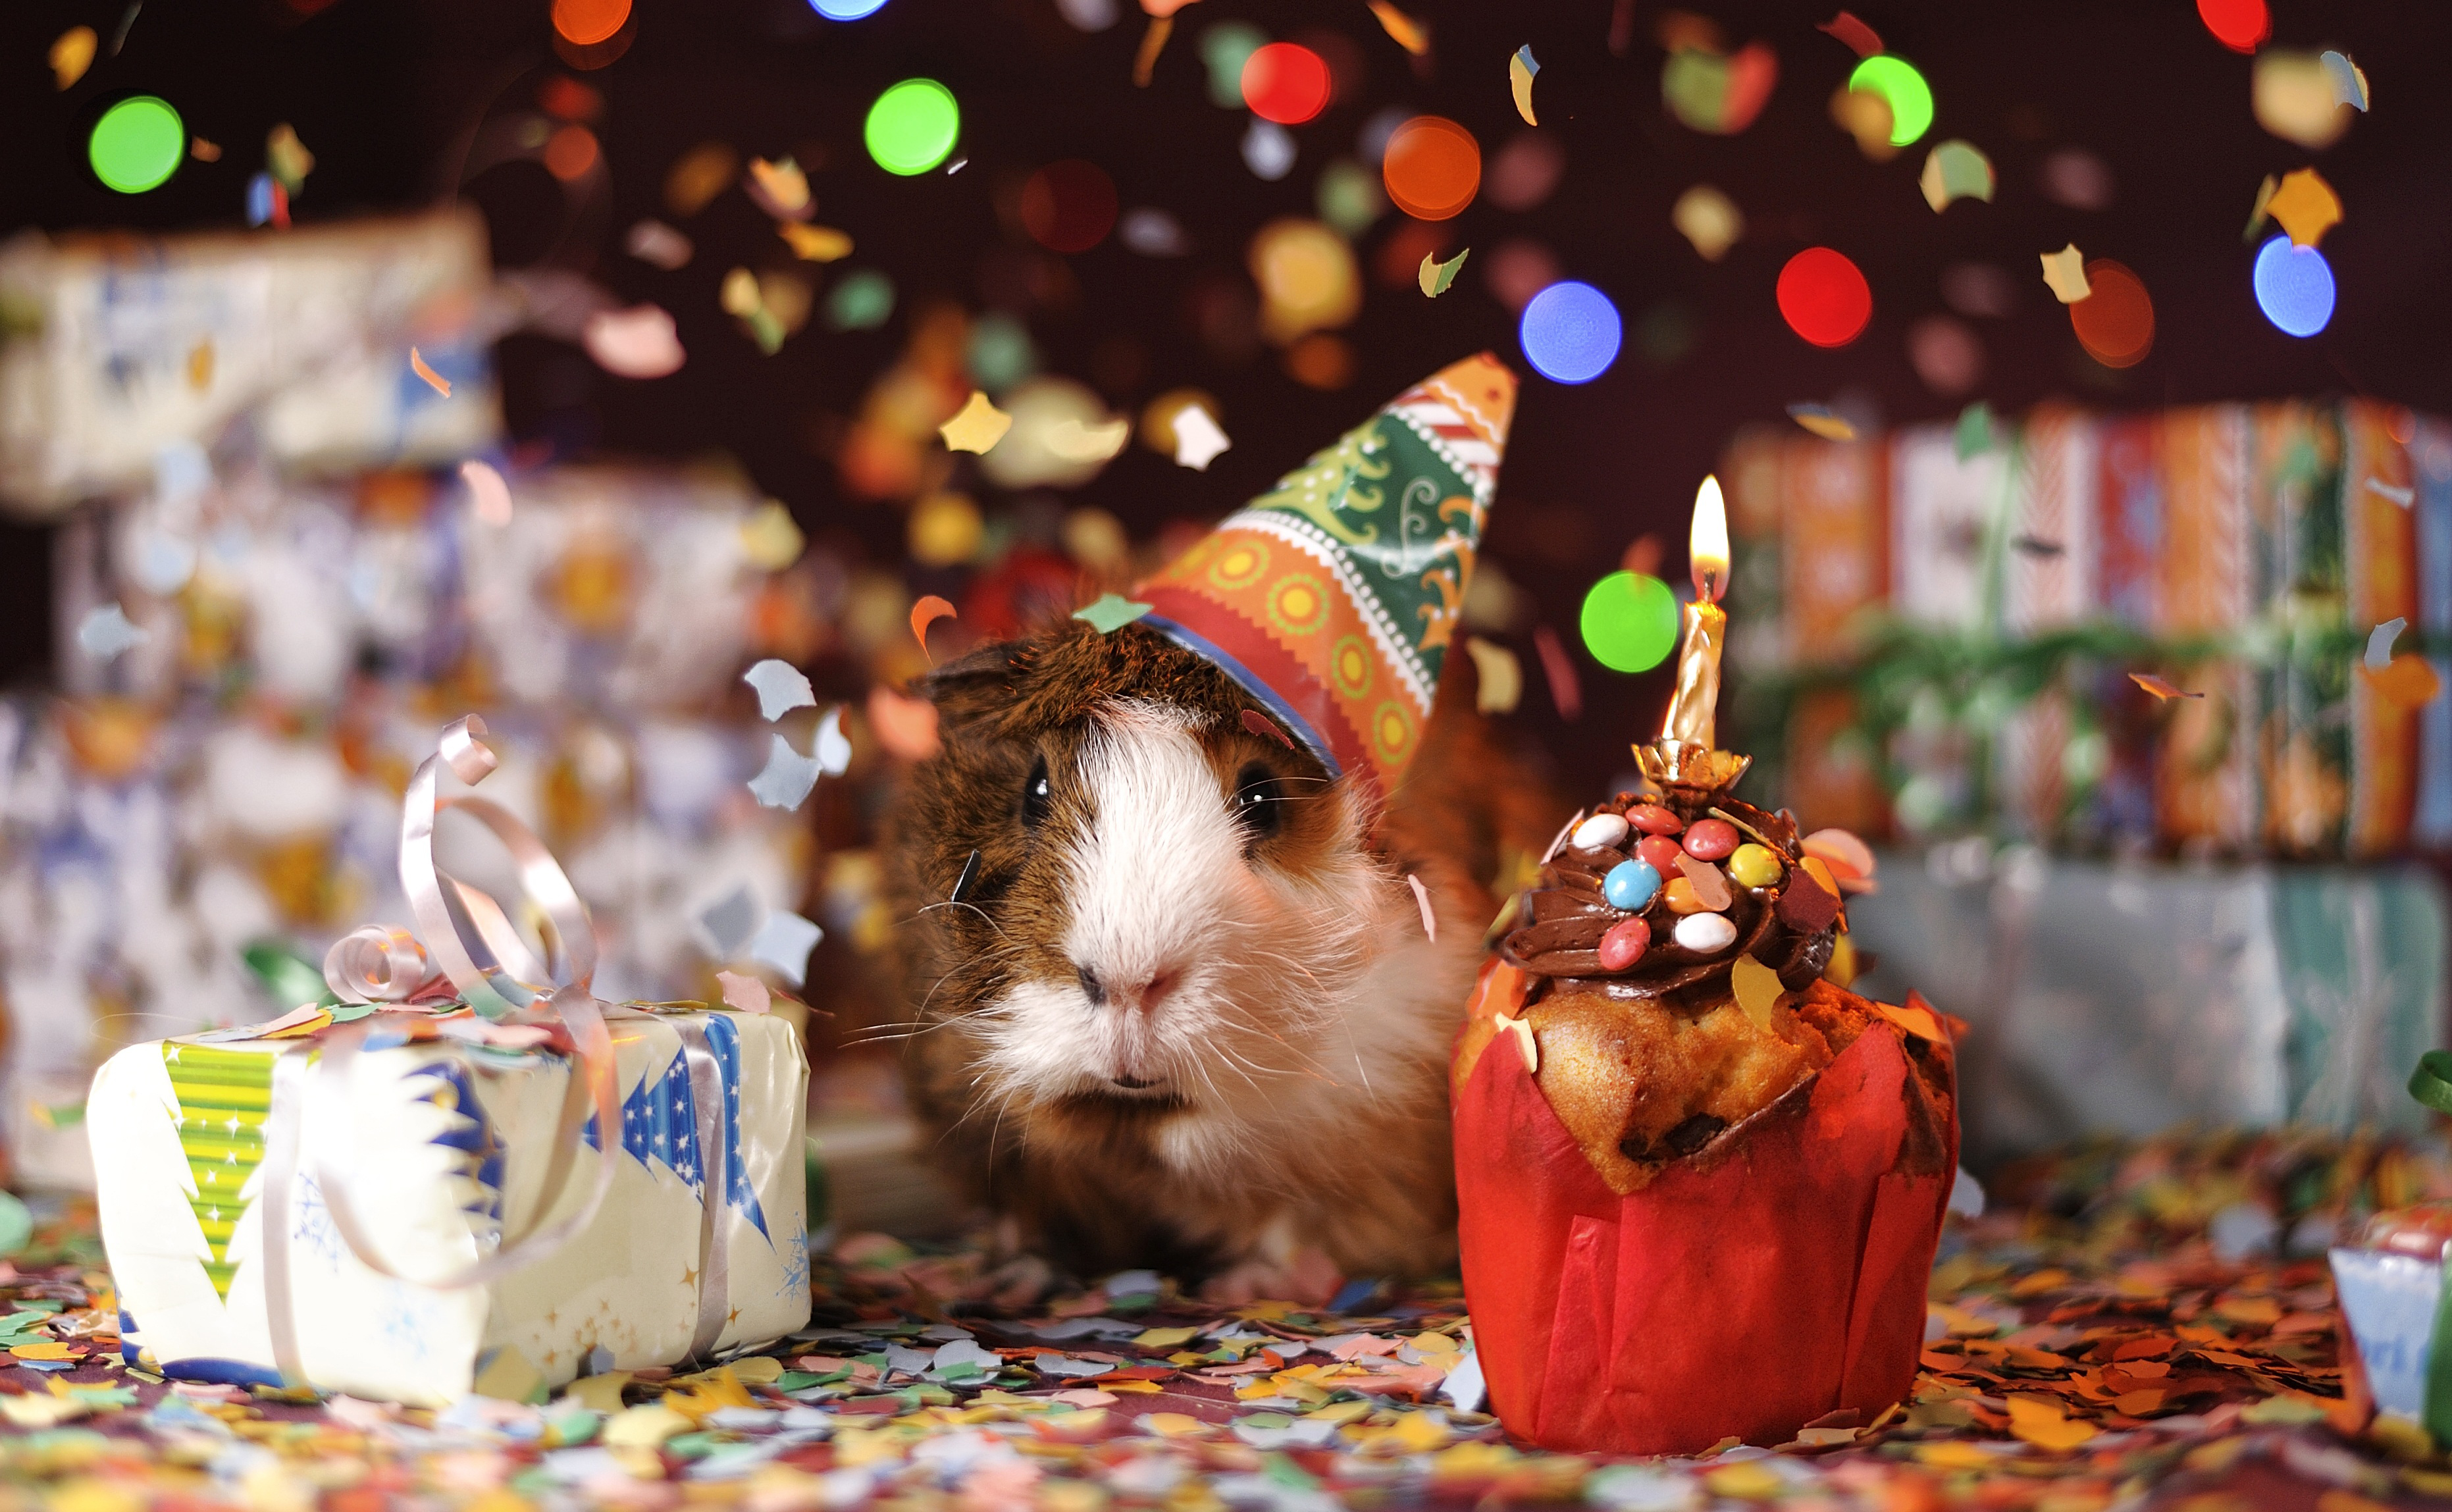 happy birthday, animal, cute, small, pig, colorful,